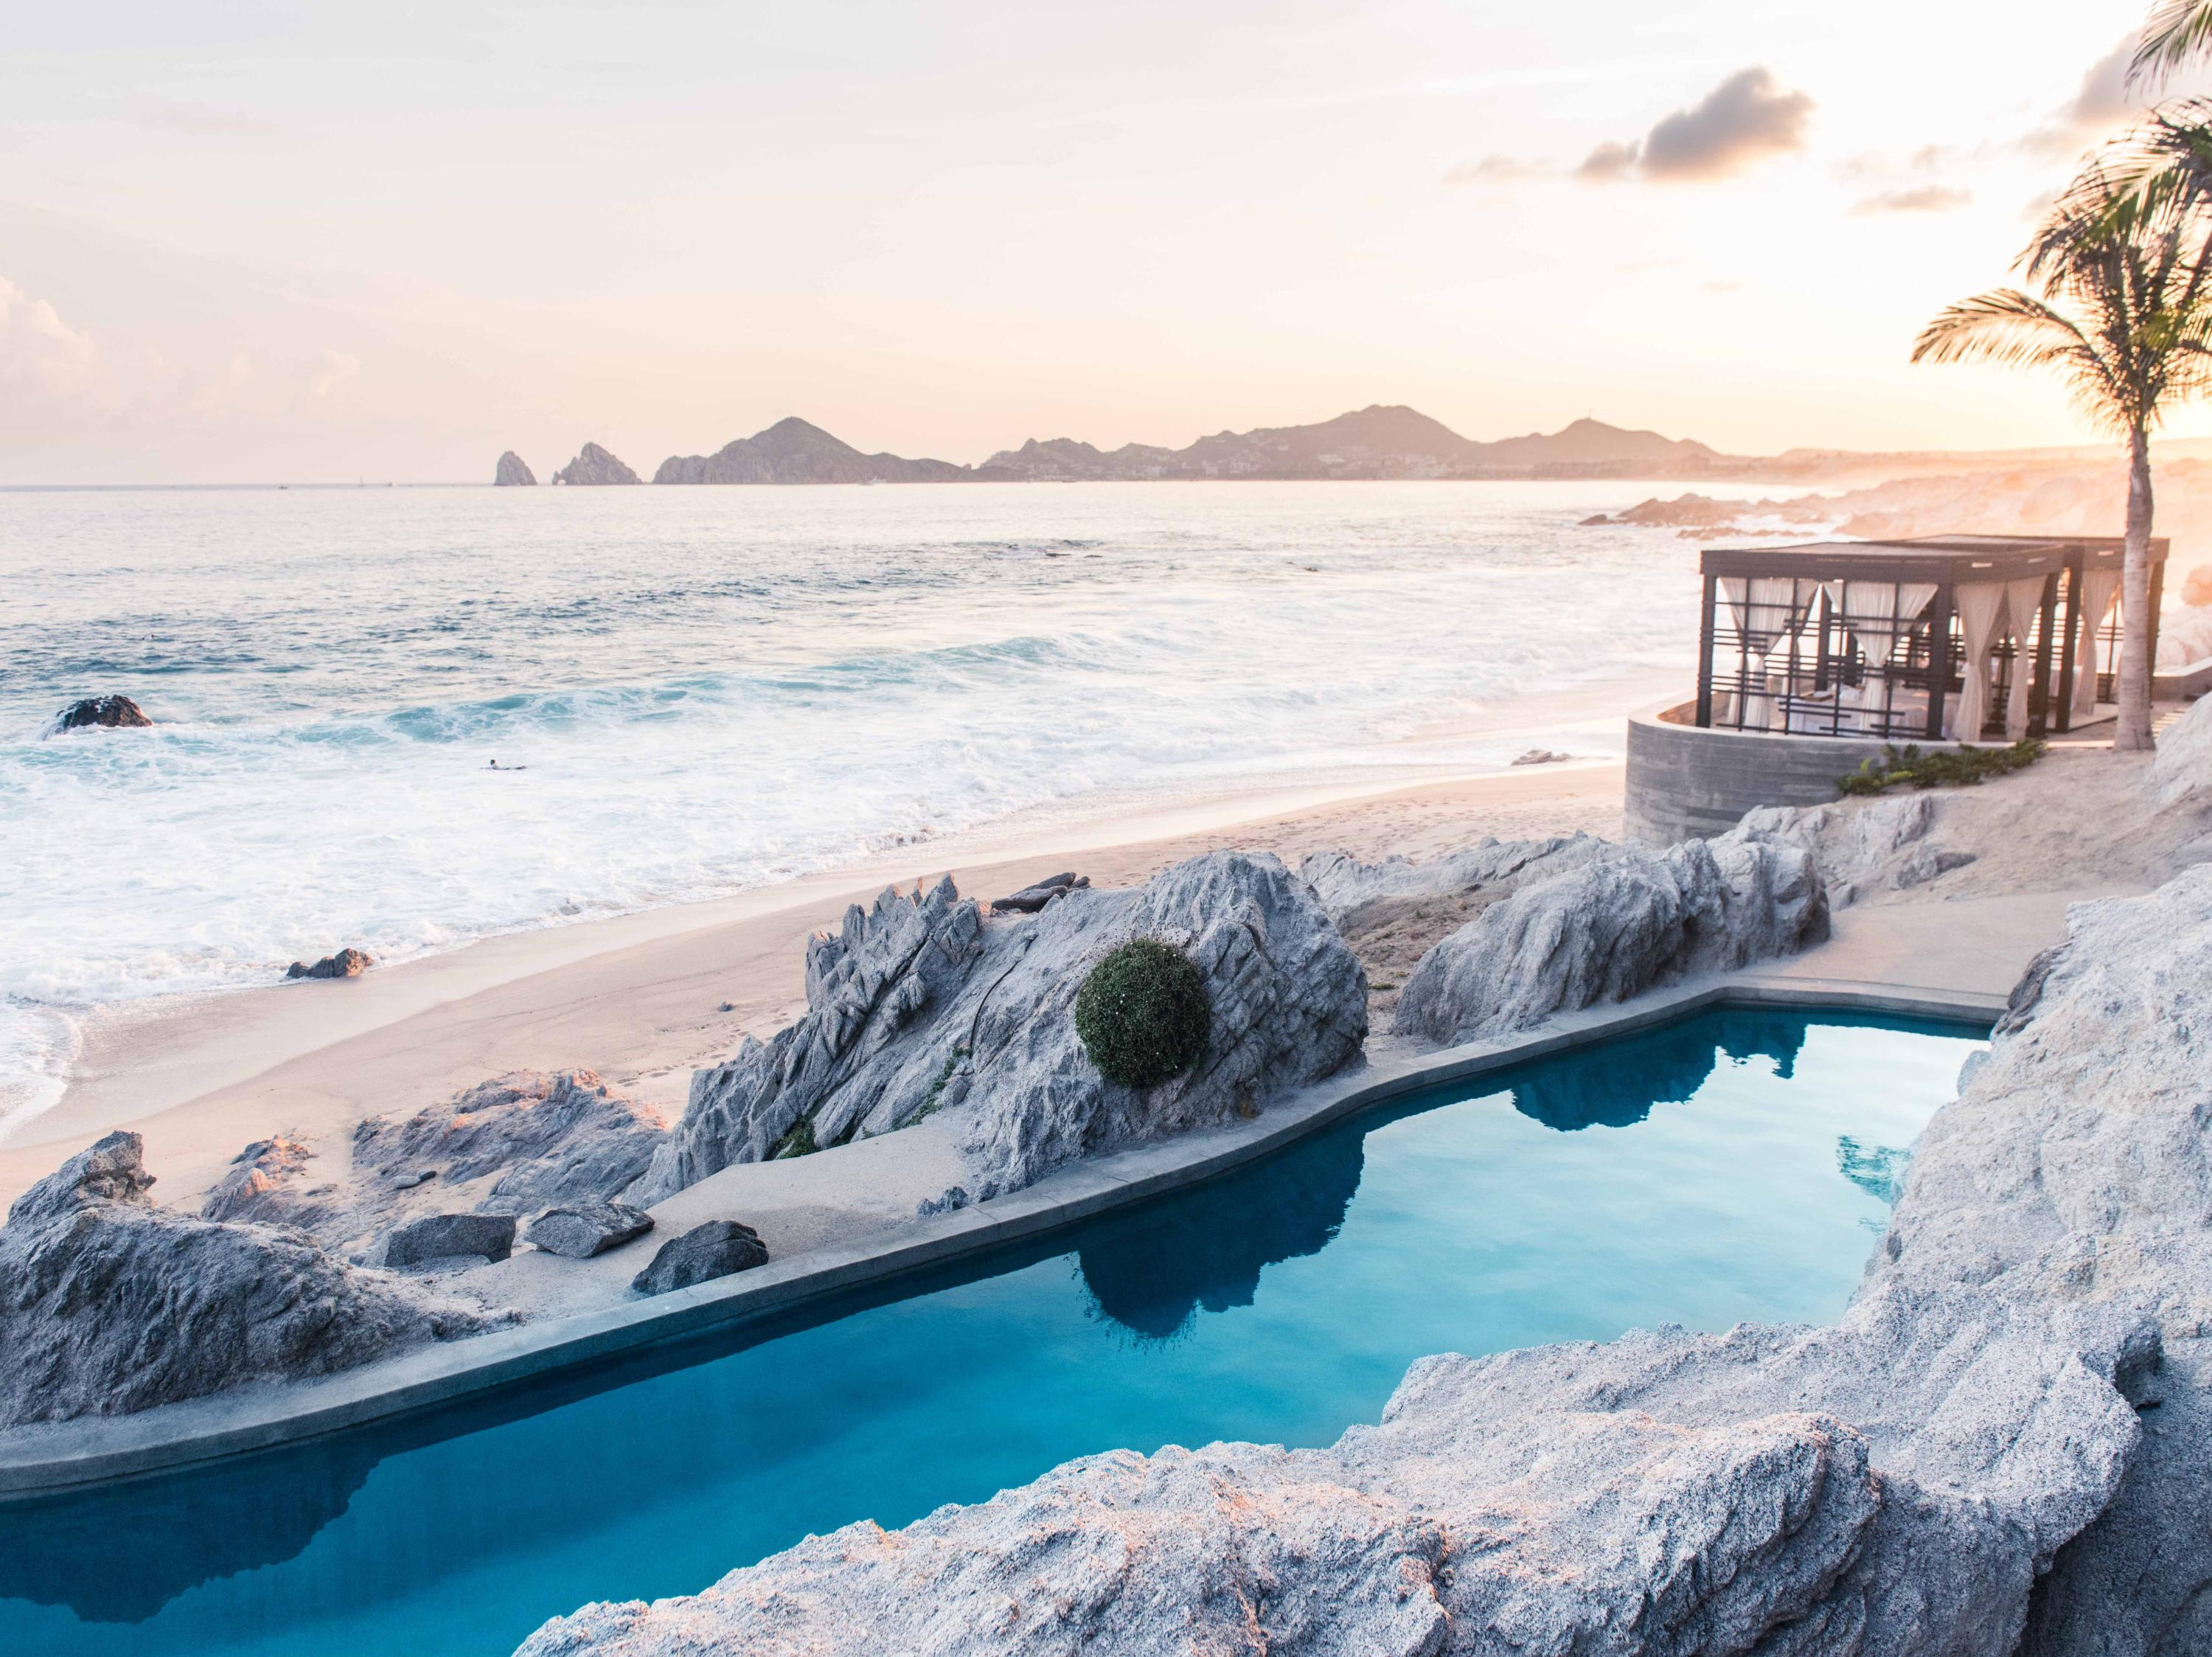 Cabo Corridor, 1 Bedroom Bedrooms, ,1 BathroomBathrooms,Condo,For Sale,The Cape, a Thompson Hotel,19-1362